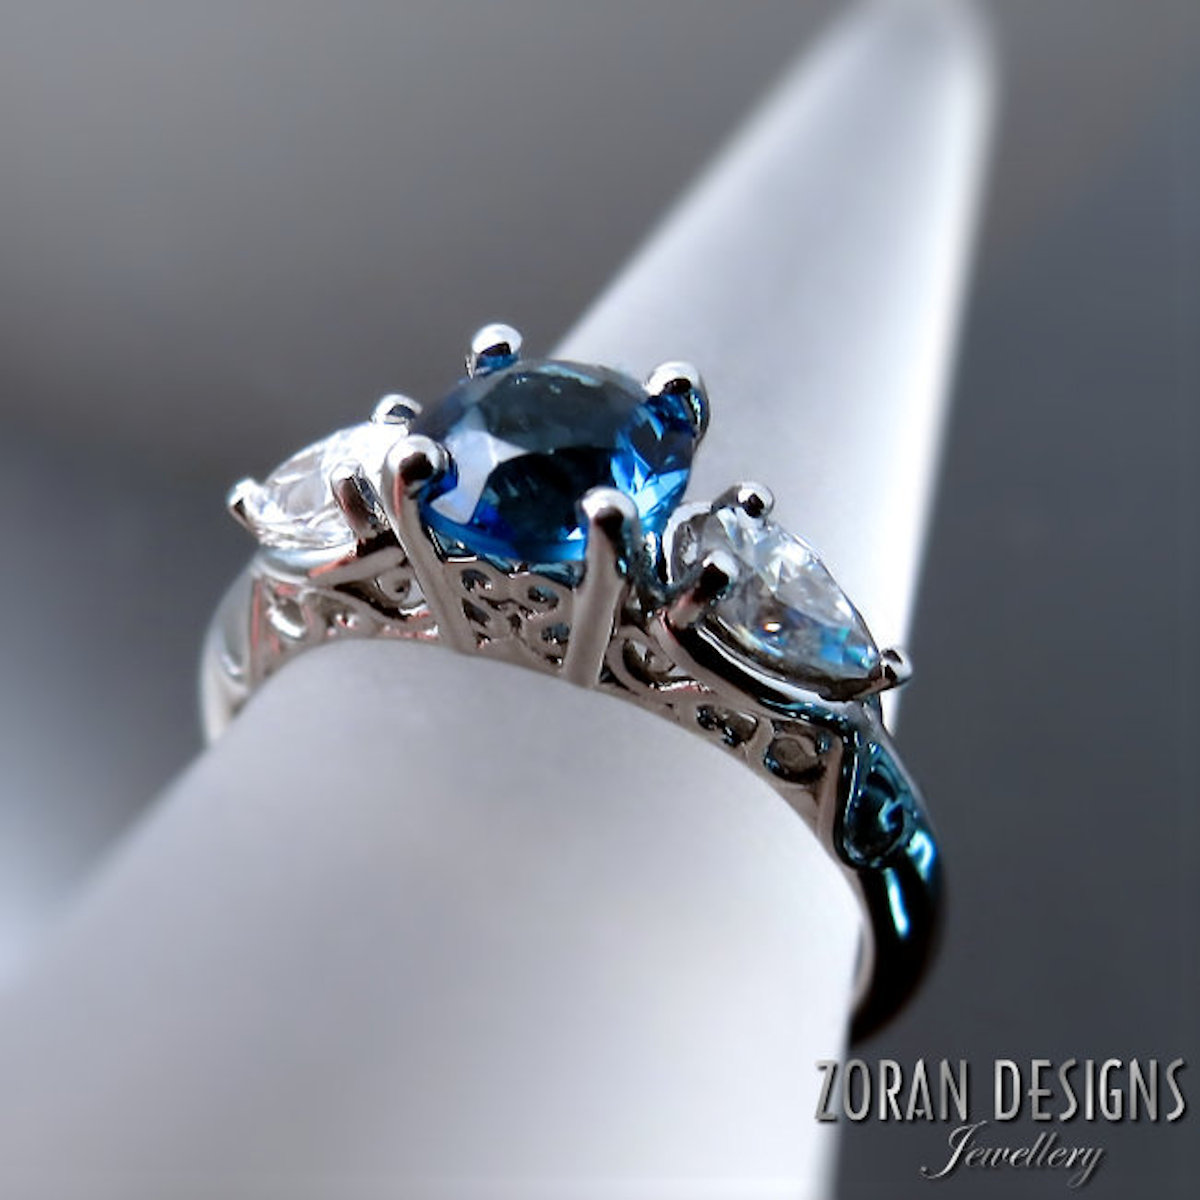 Custom made engagement ring with fancy gallery and vintage inspired design